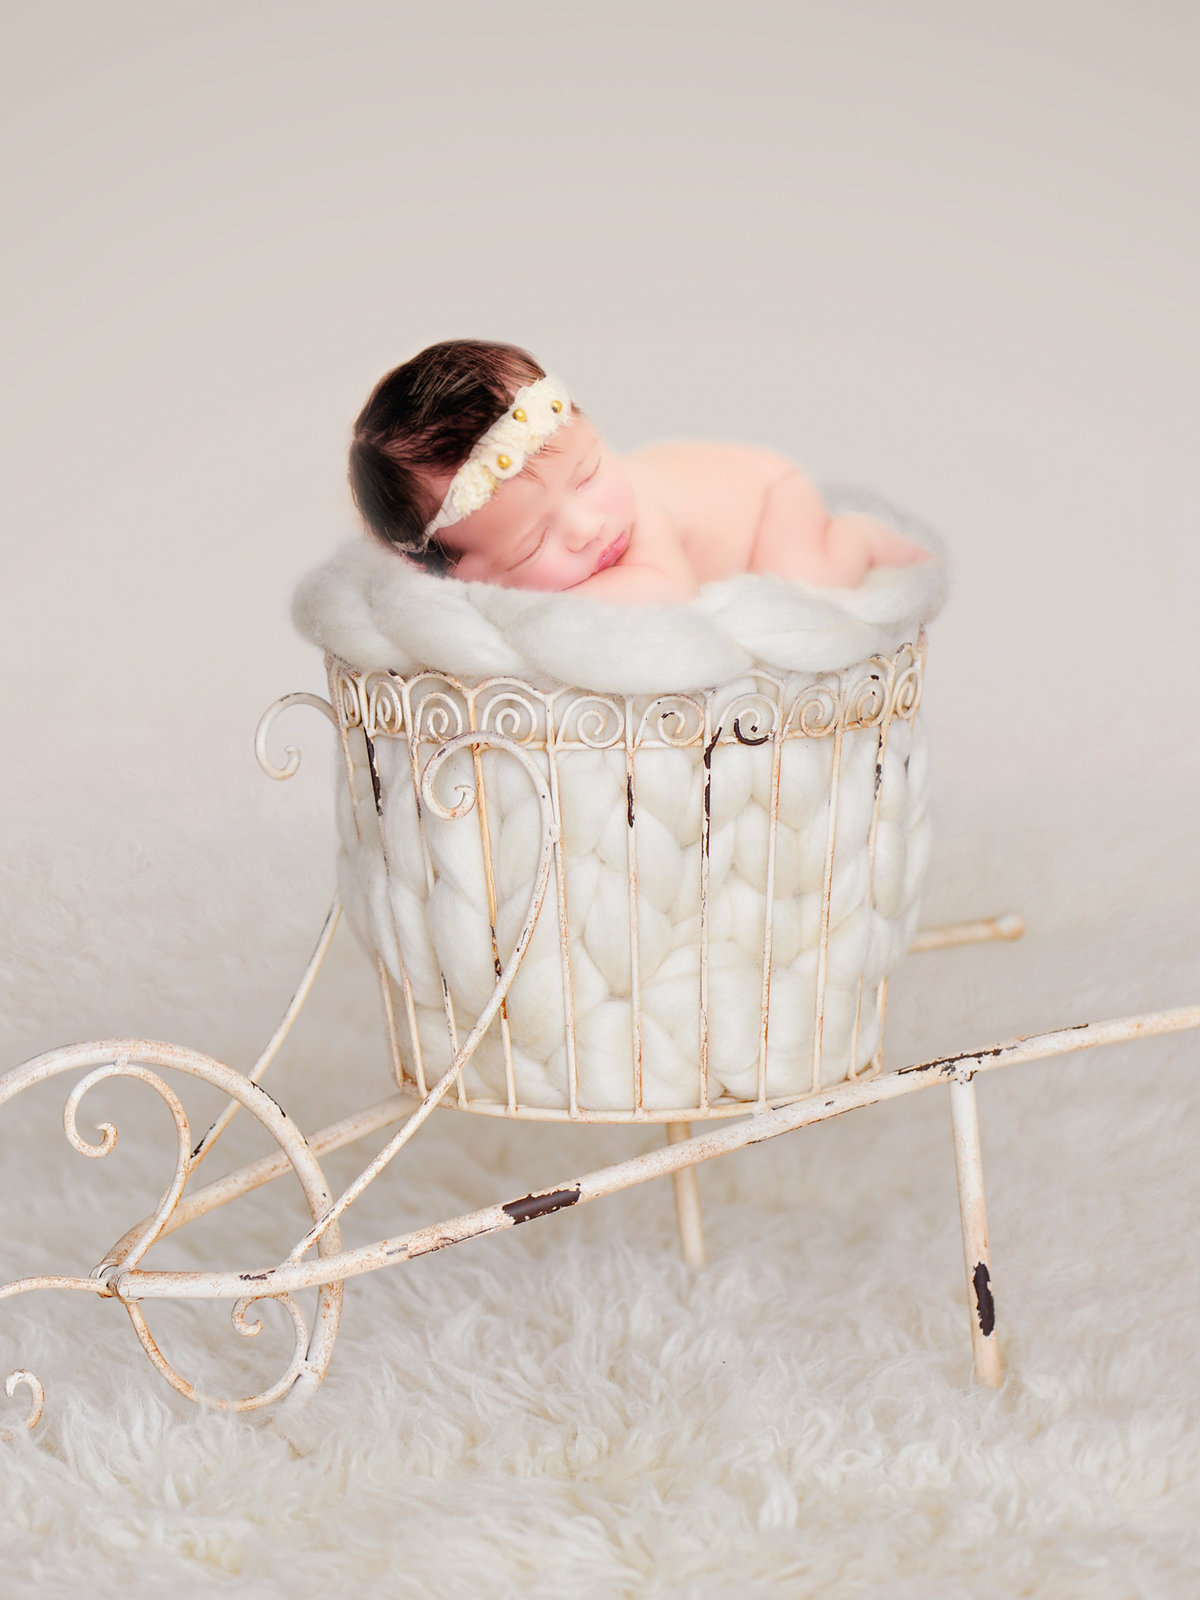 newborn portrait photography in traverse city michigan